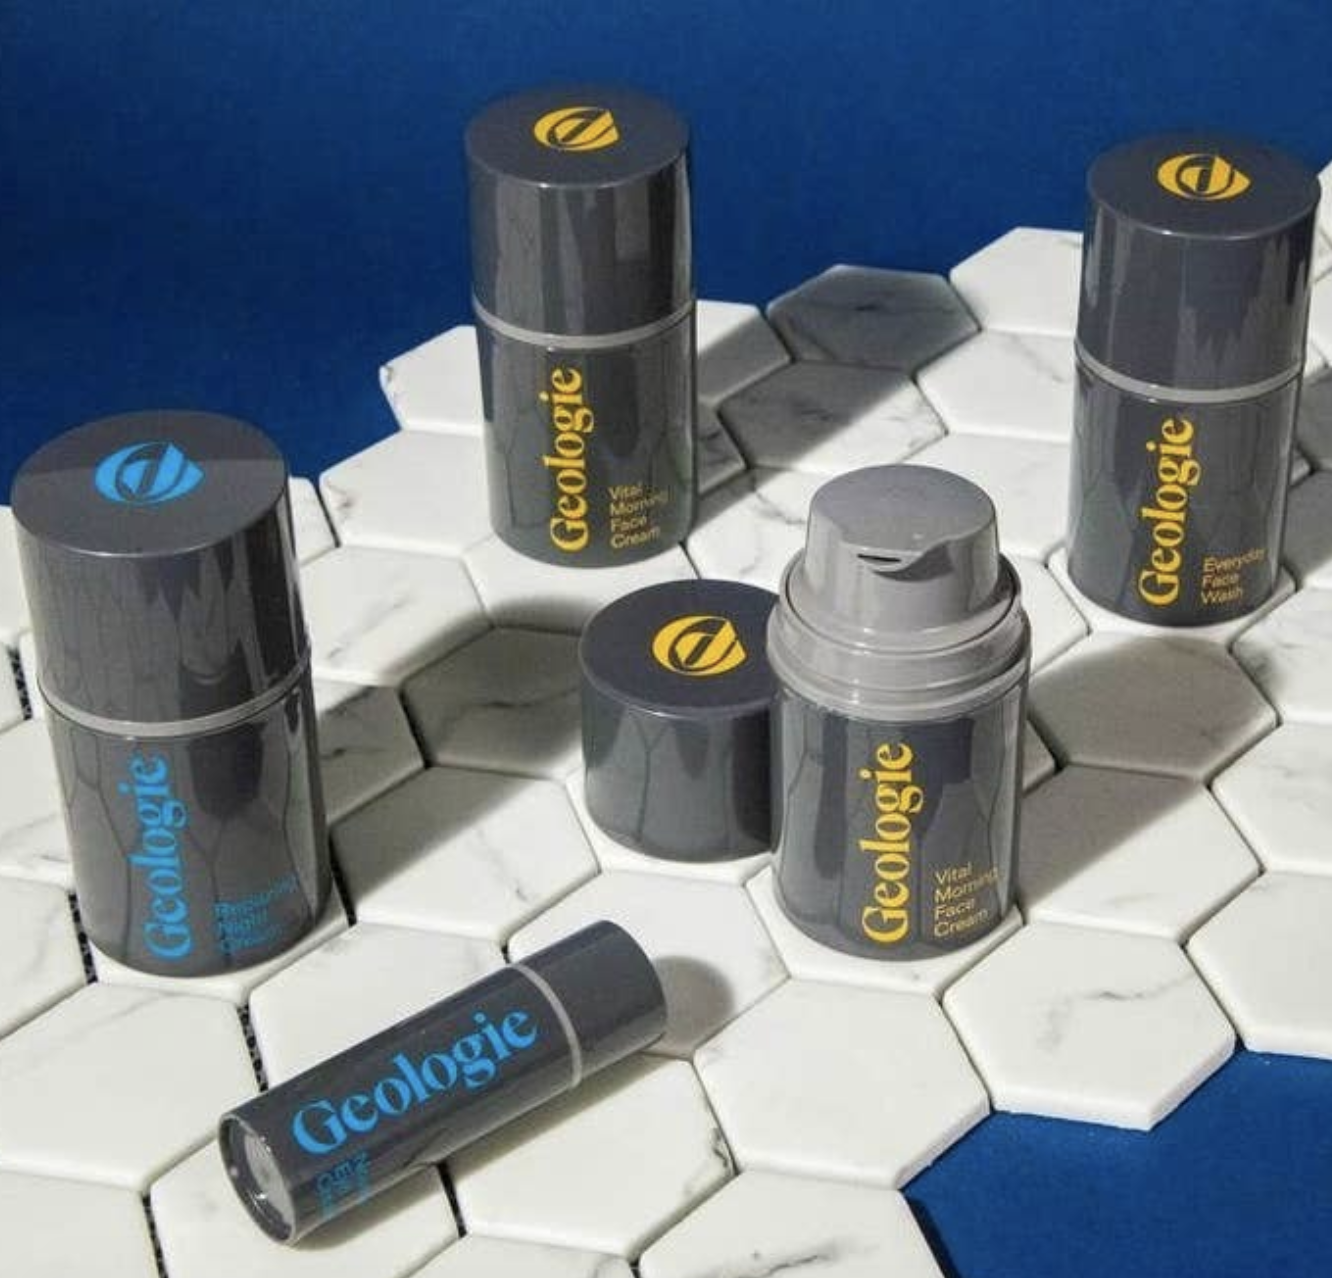 Gray Geologie skincare product bottles arranged on a tile counter